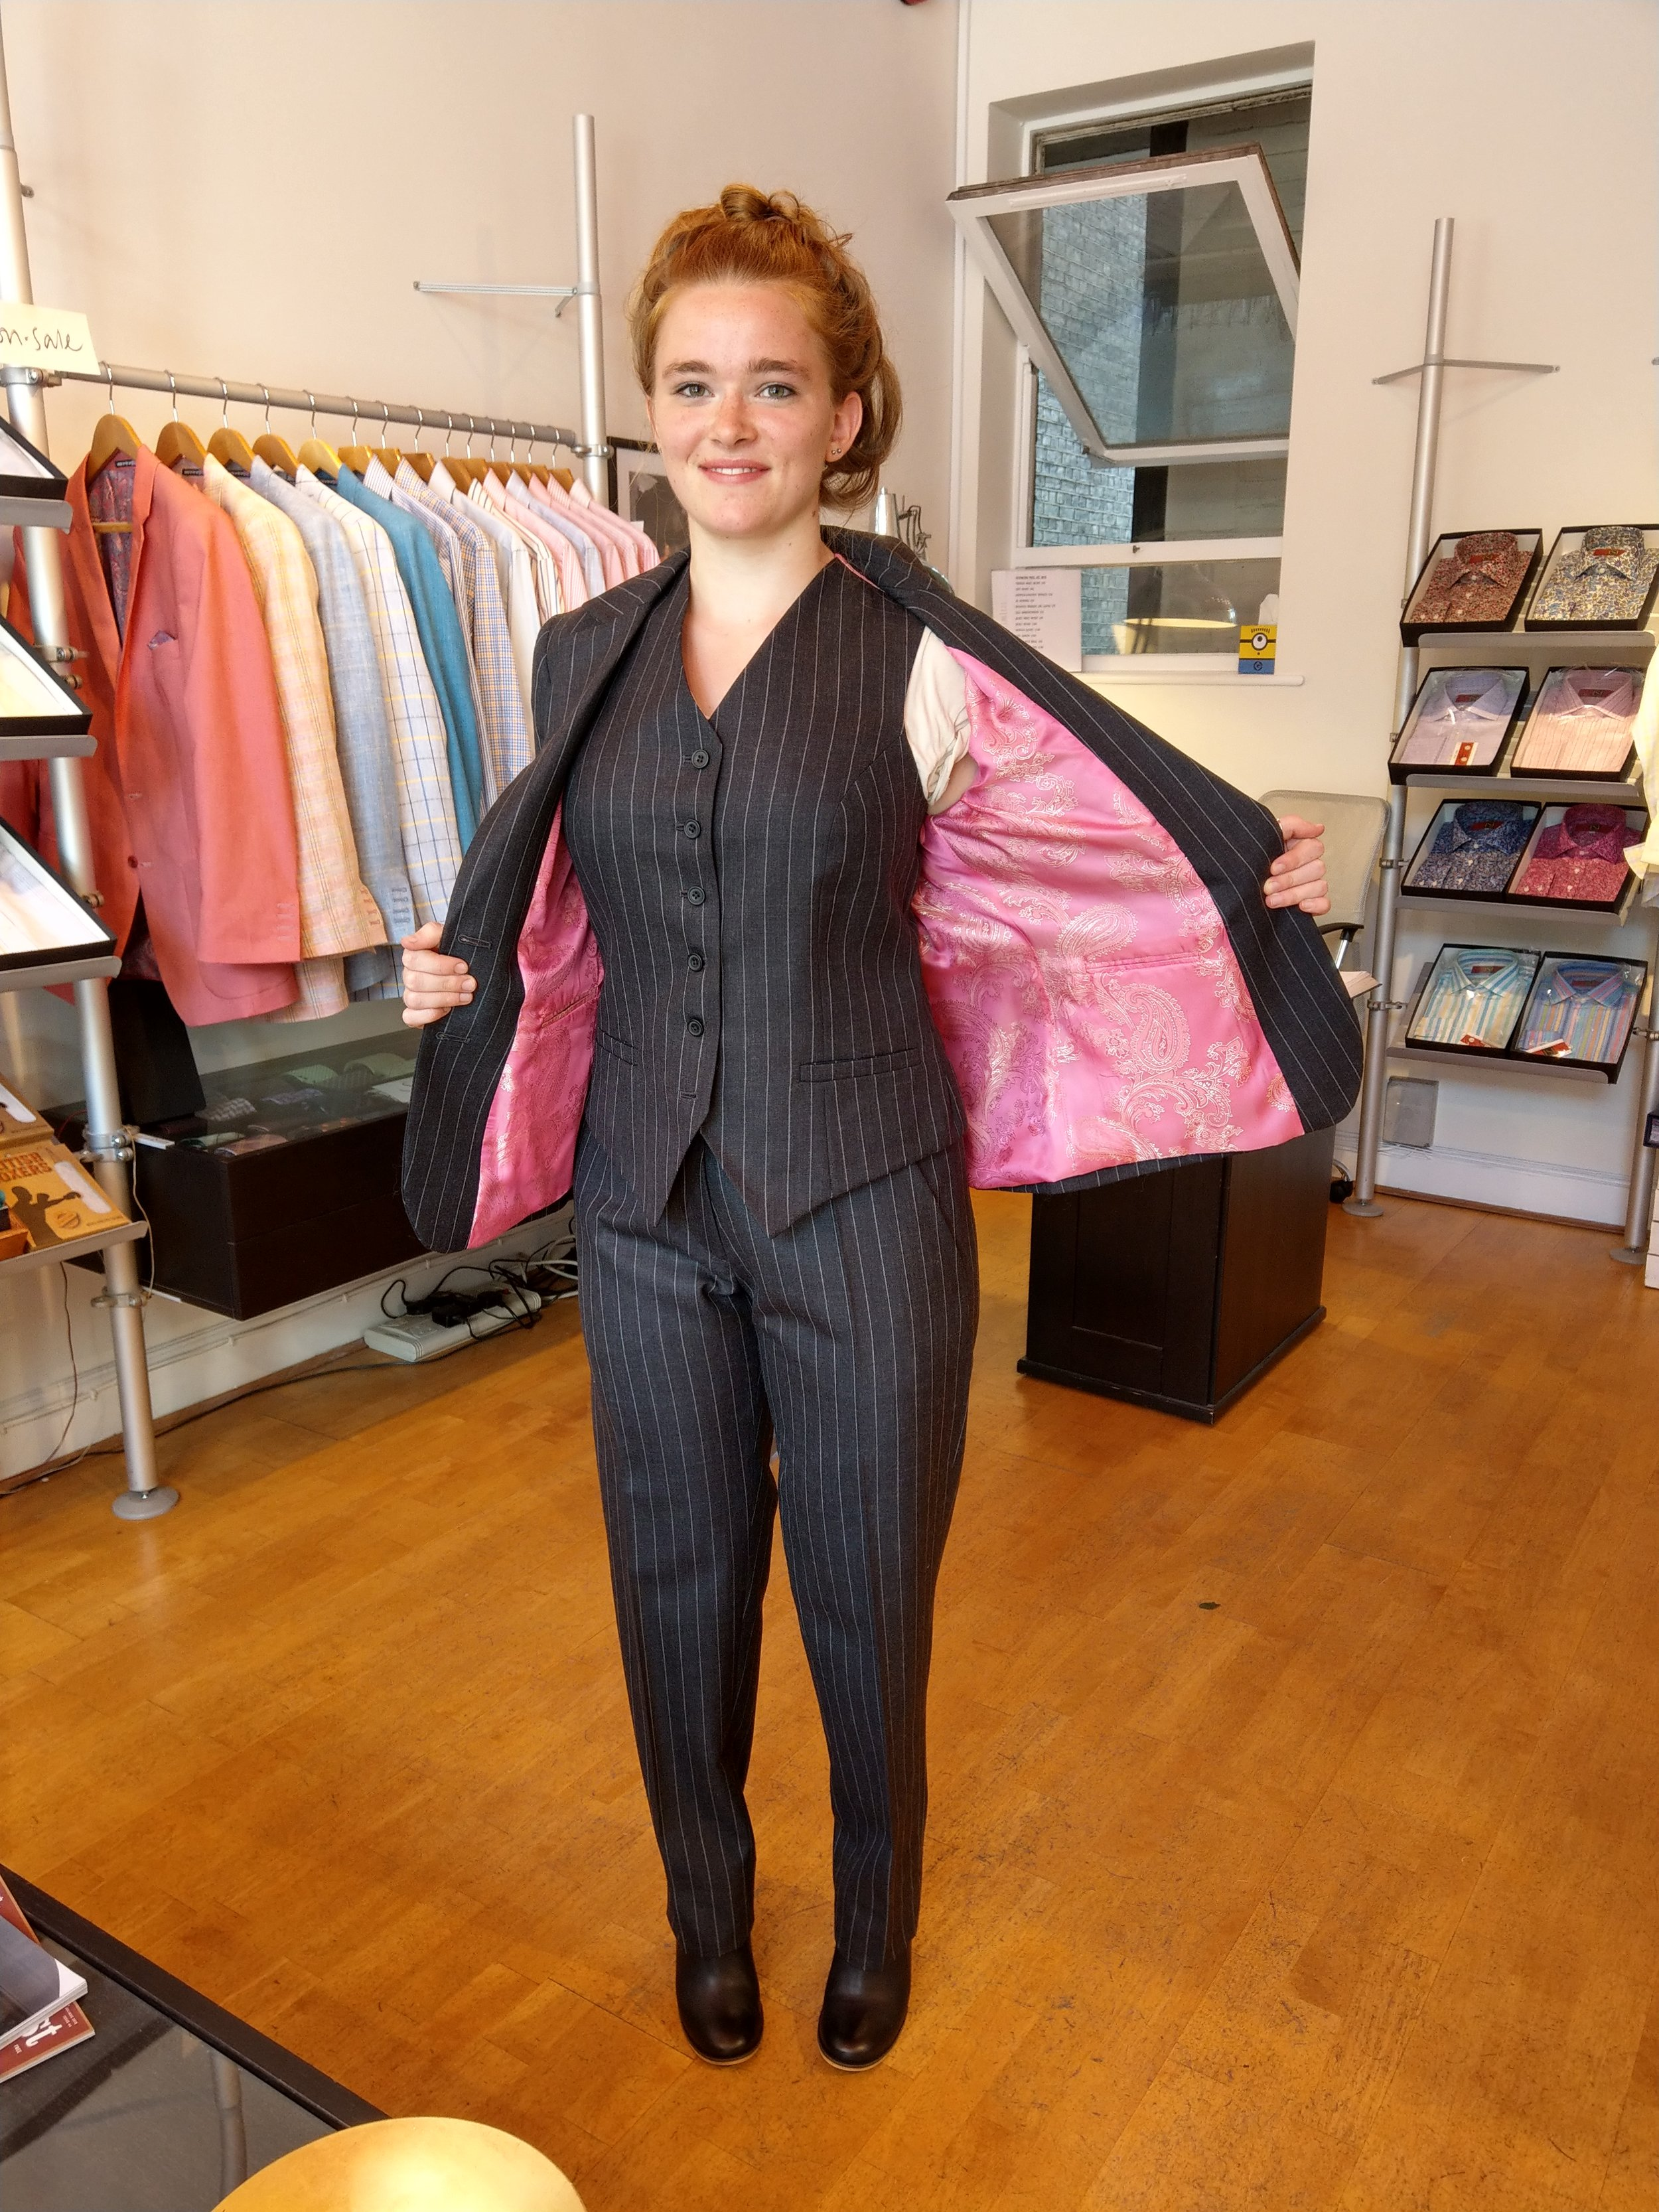 hall-tailors-bespoke-suit-ladies-vintage-retro-style-pin-stripe-dugdale-uk-british.jpg